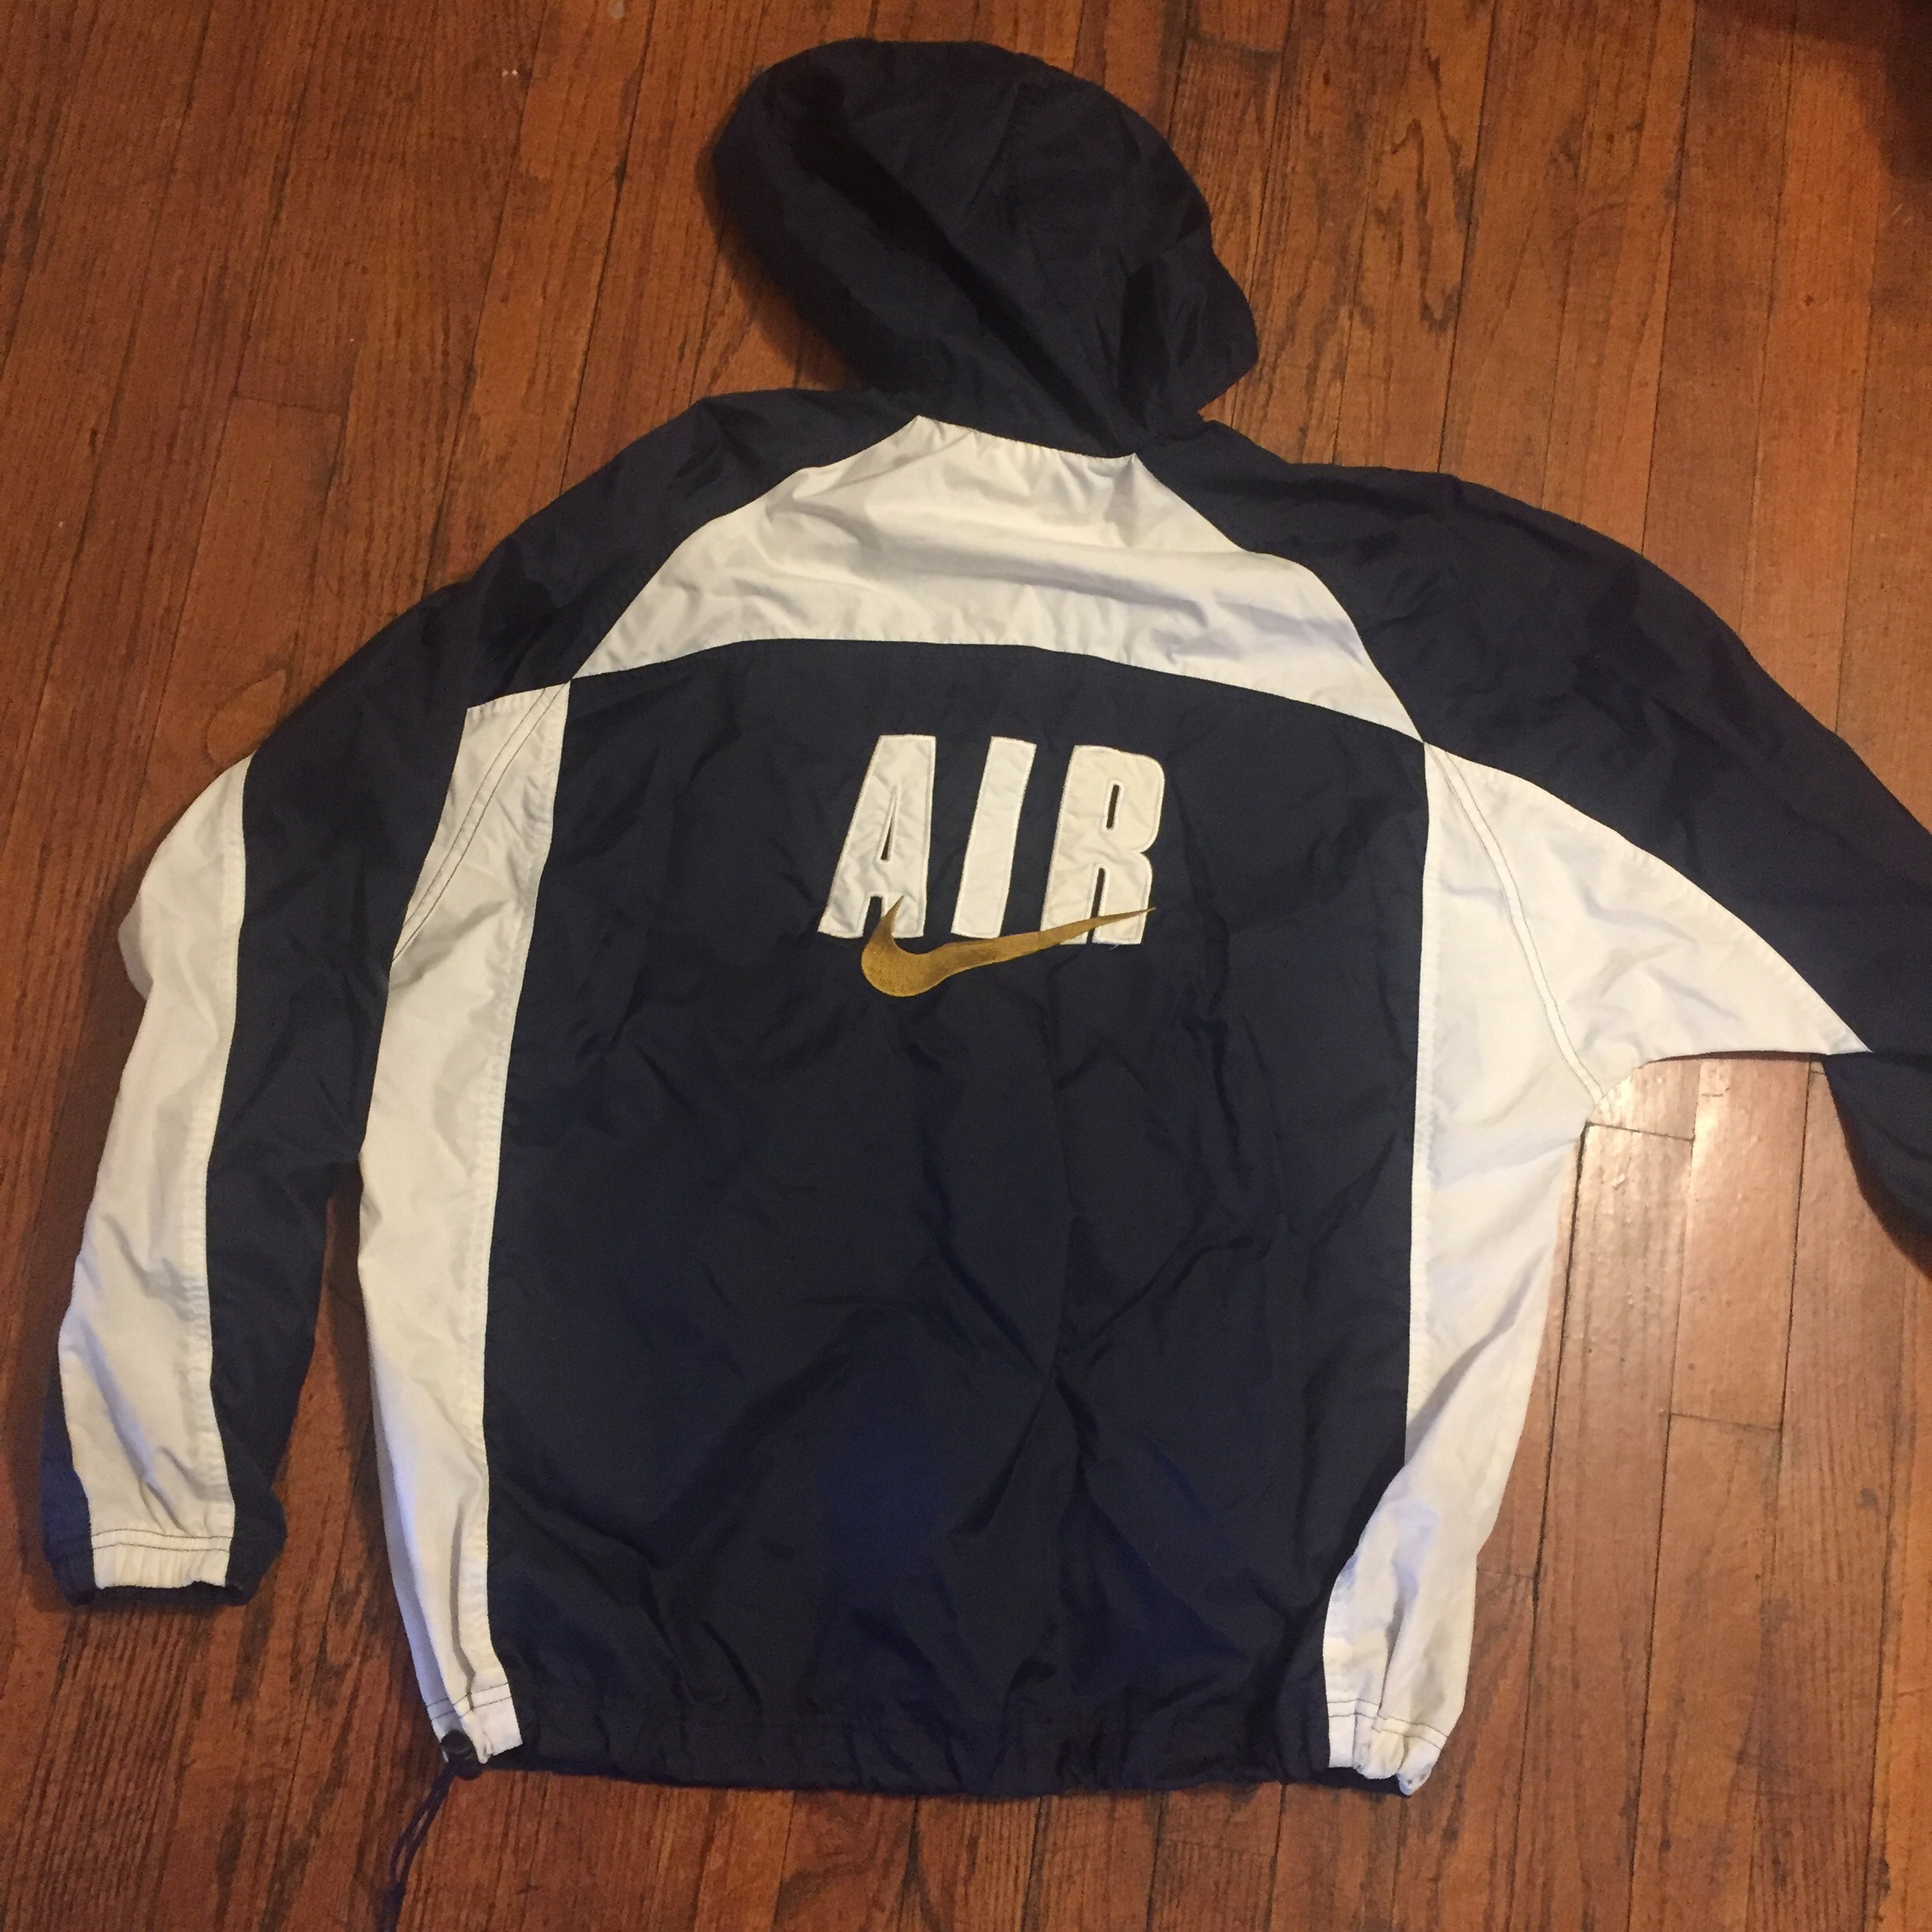 be81d13d7a2 @paanda666. last year. United States. Vintage early 90s NIKE air ...